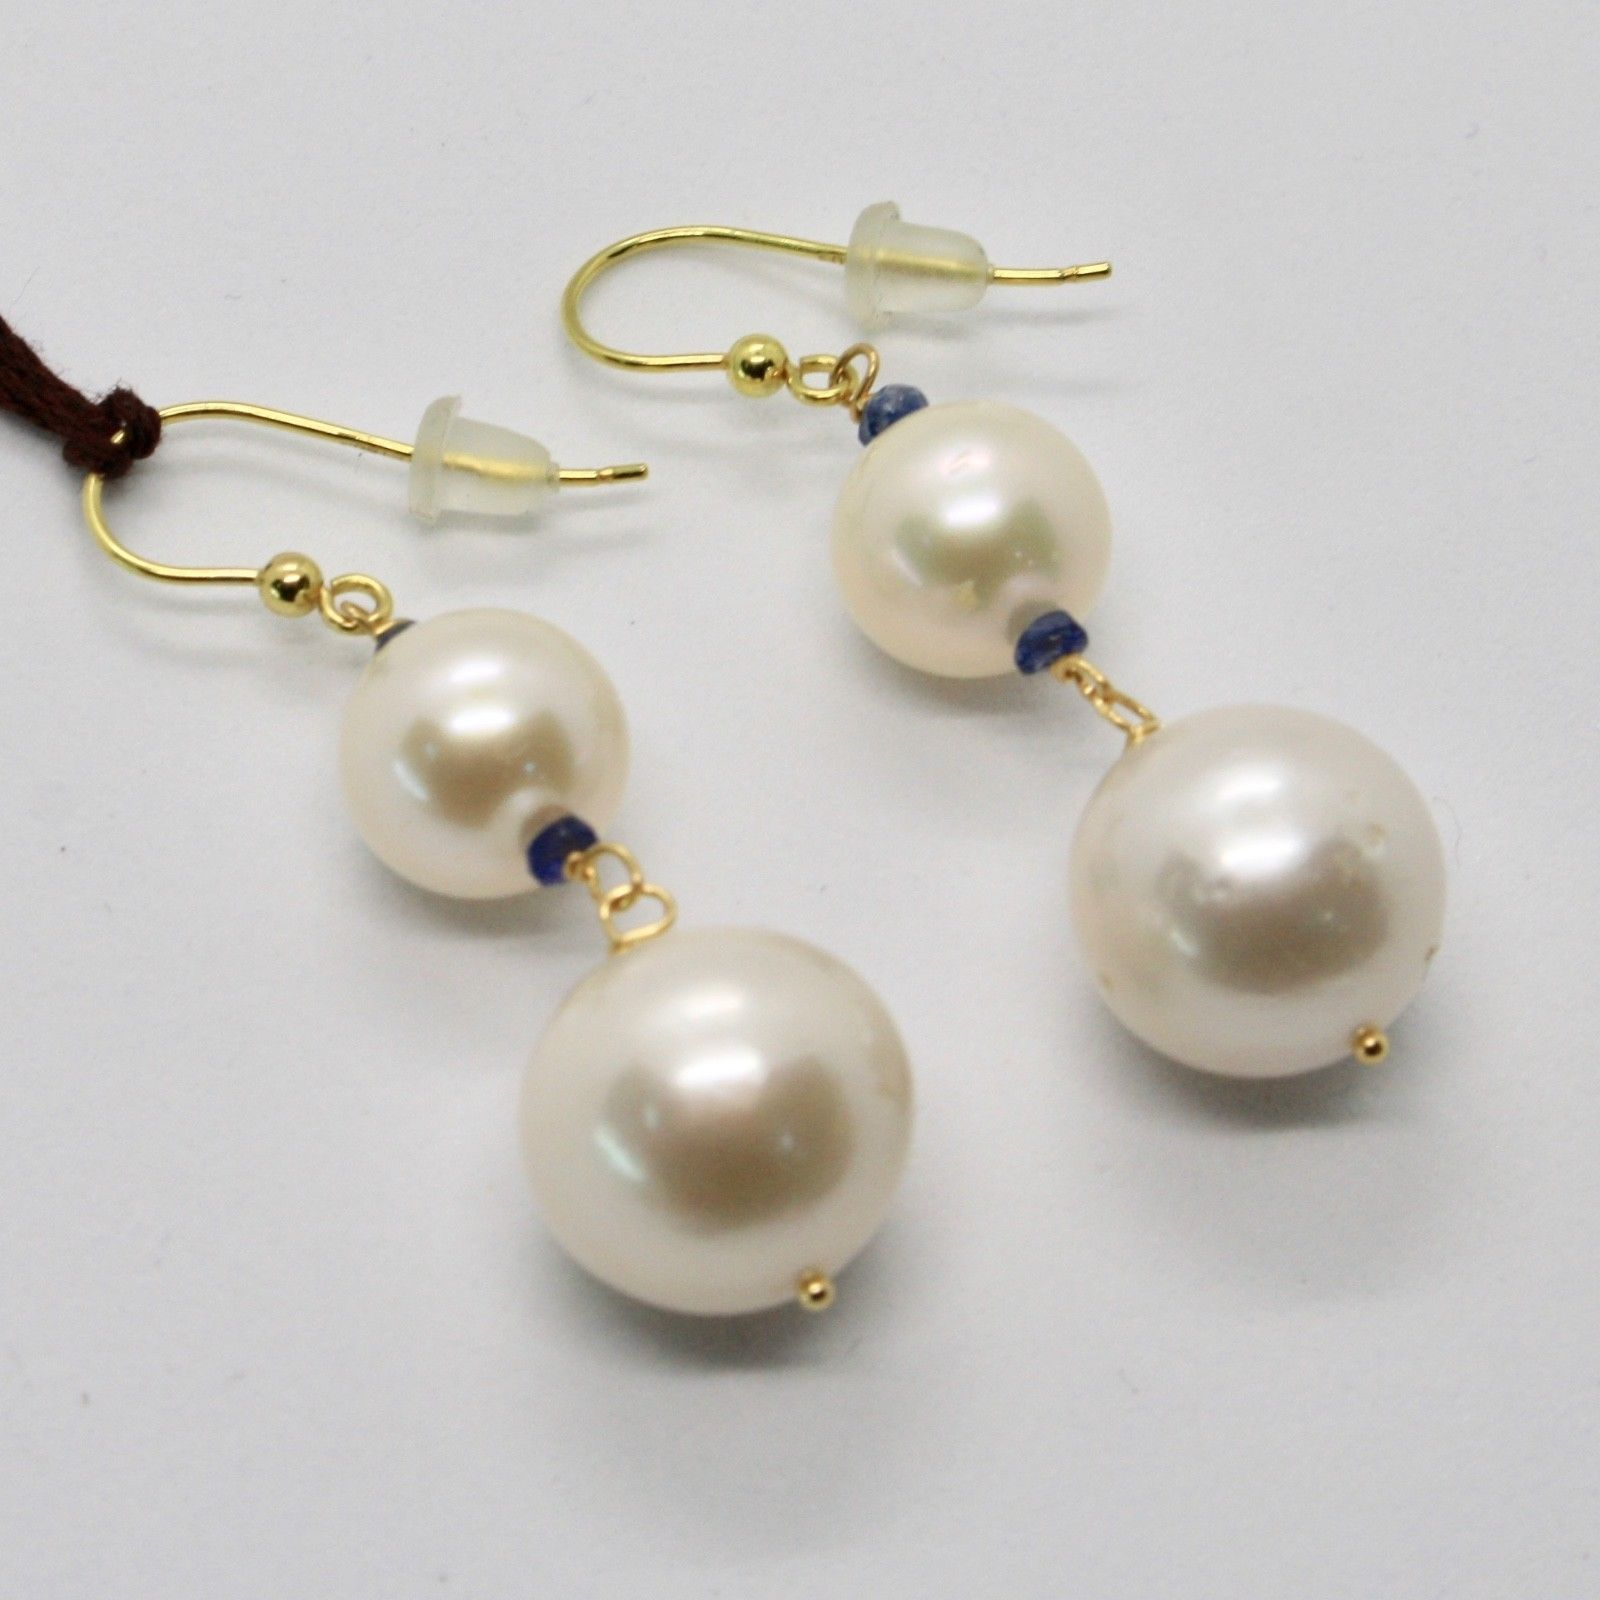 YELLOW GOLD EARRINGS 18K 750 PEARLS FRESHWATER AND SAPPHIRES MADE IN ITALY